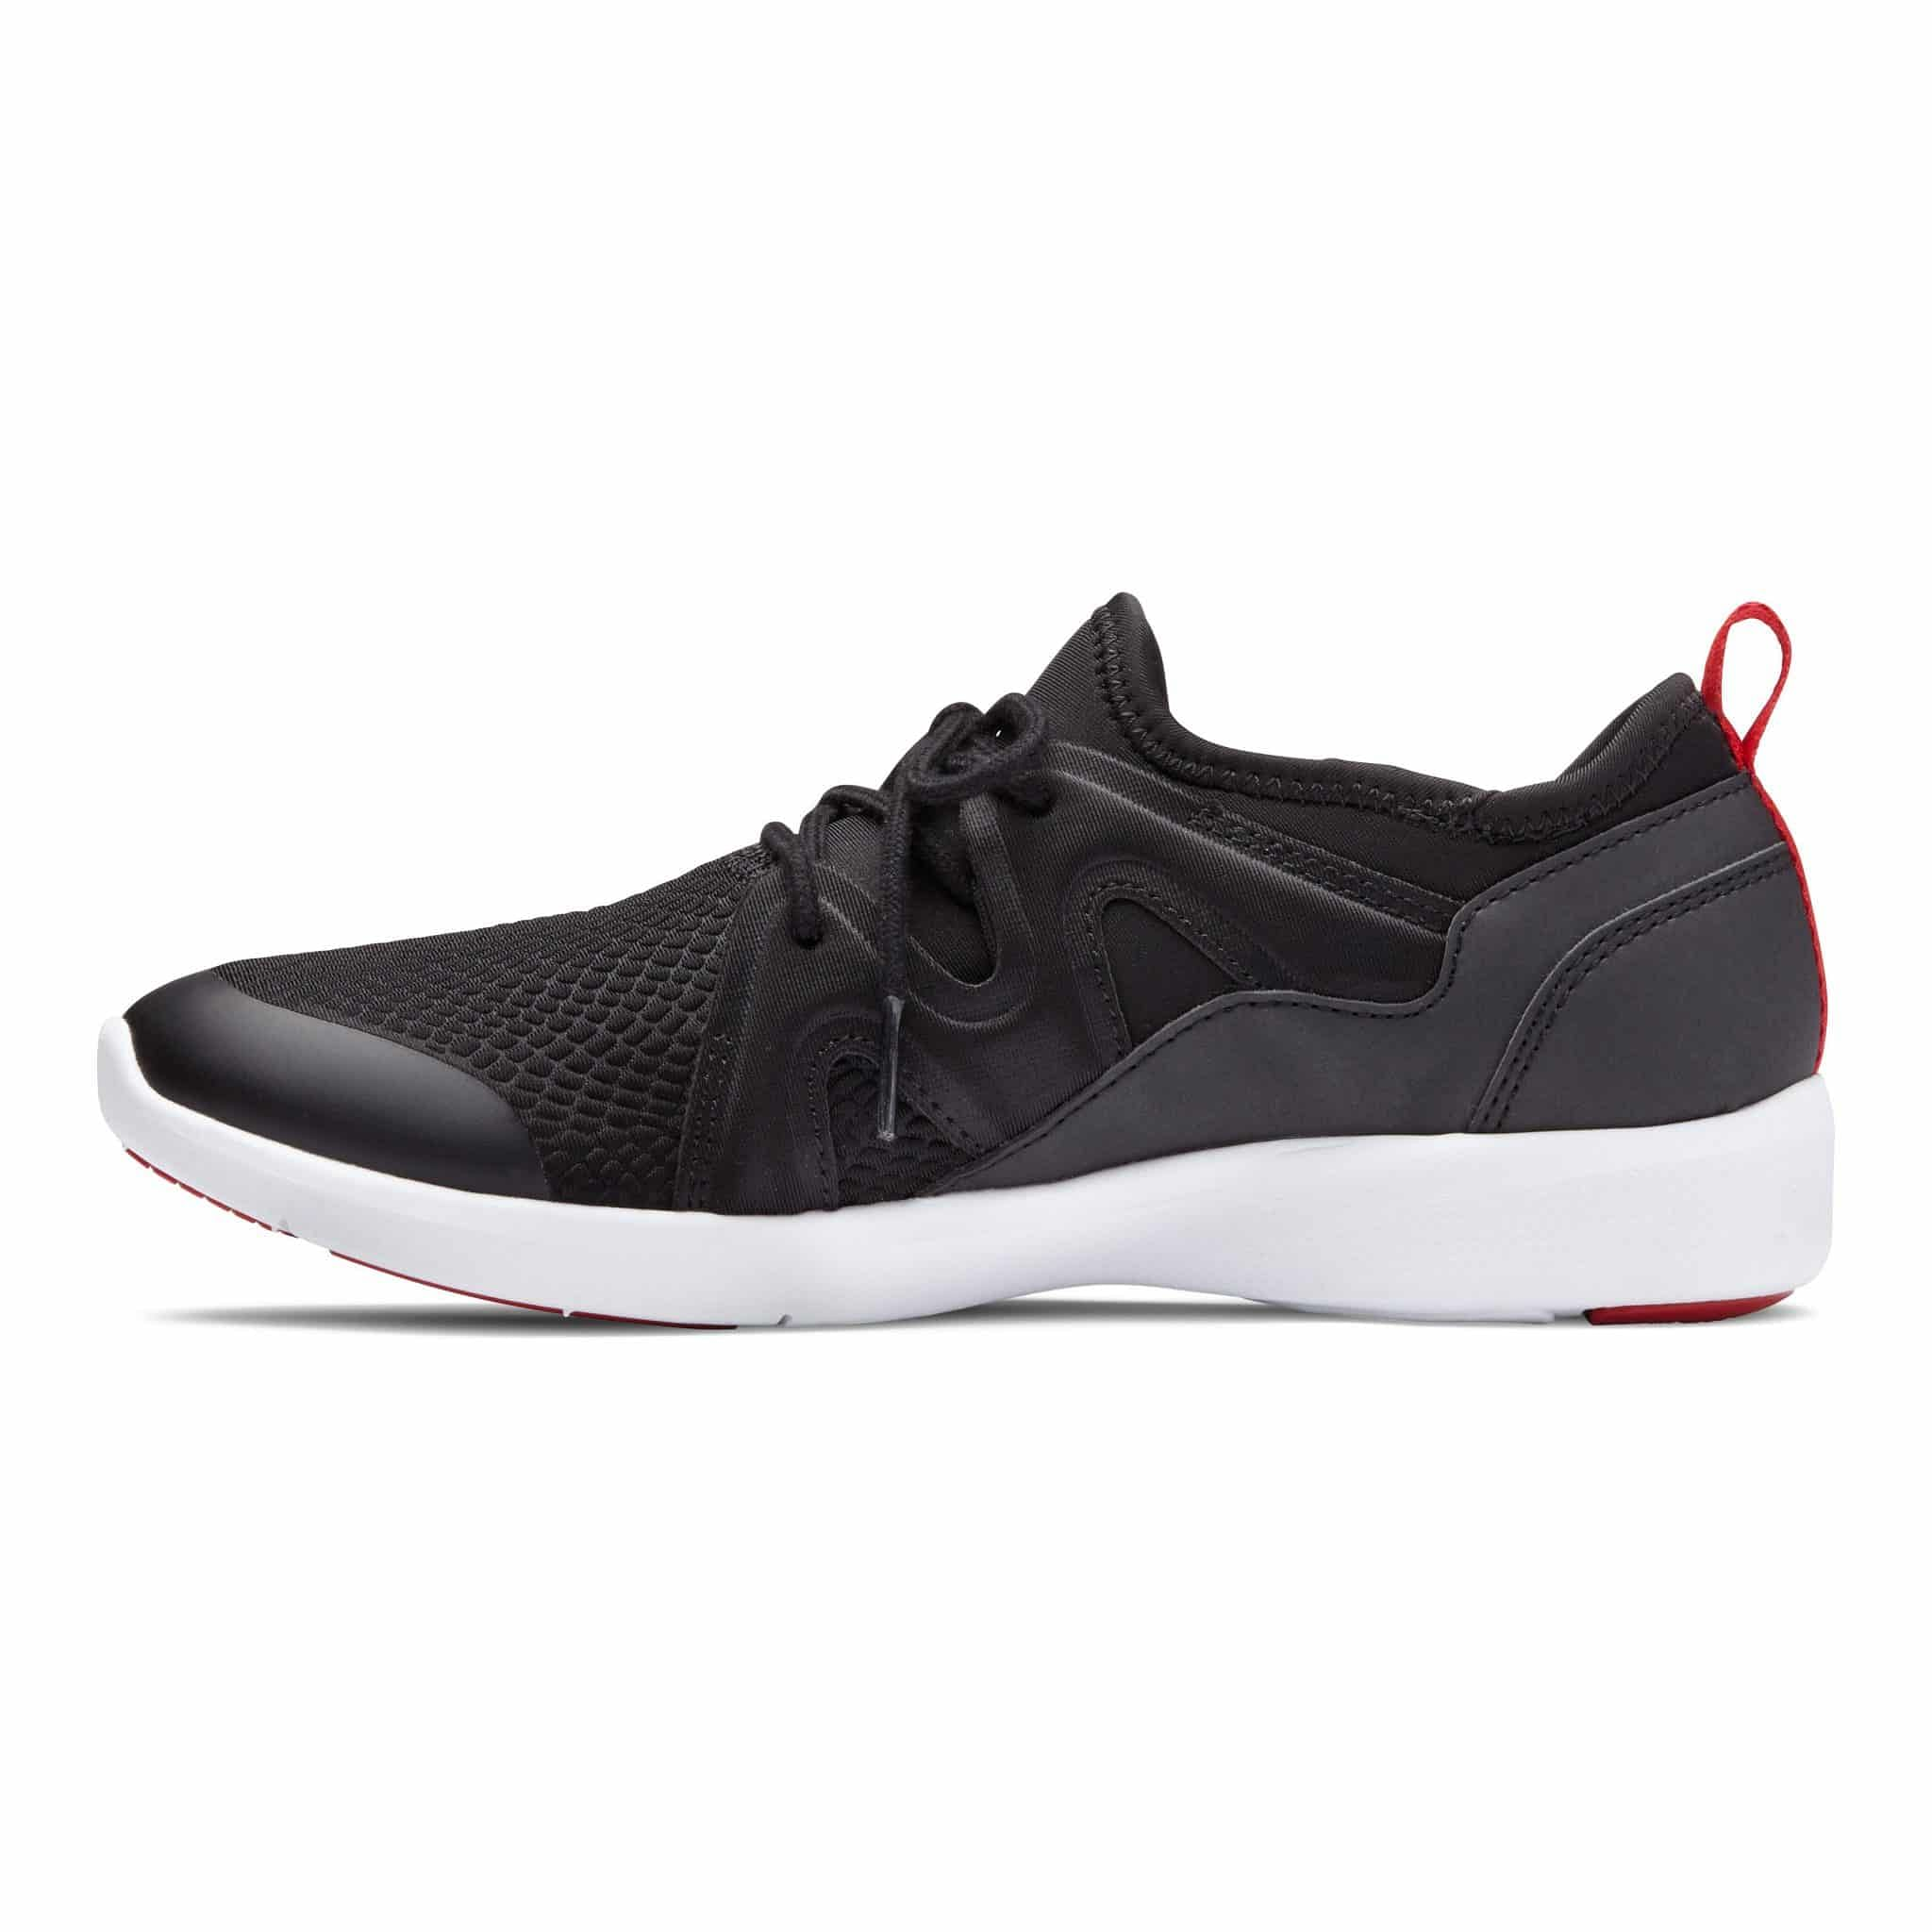 VIONIC Storm Sneakers with Arch Support